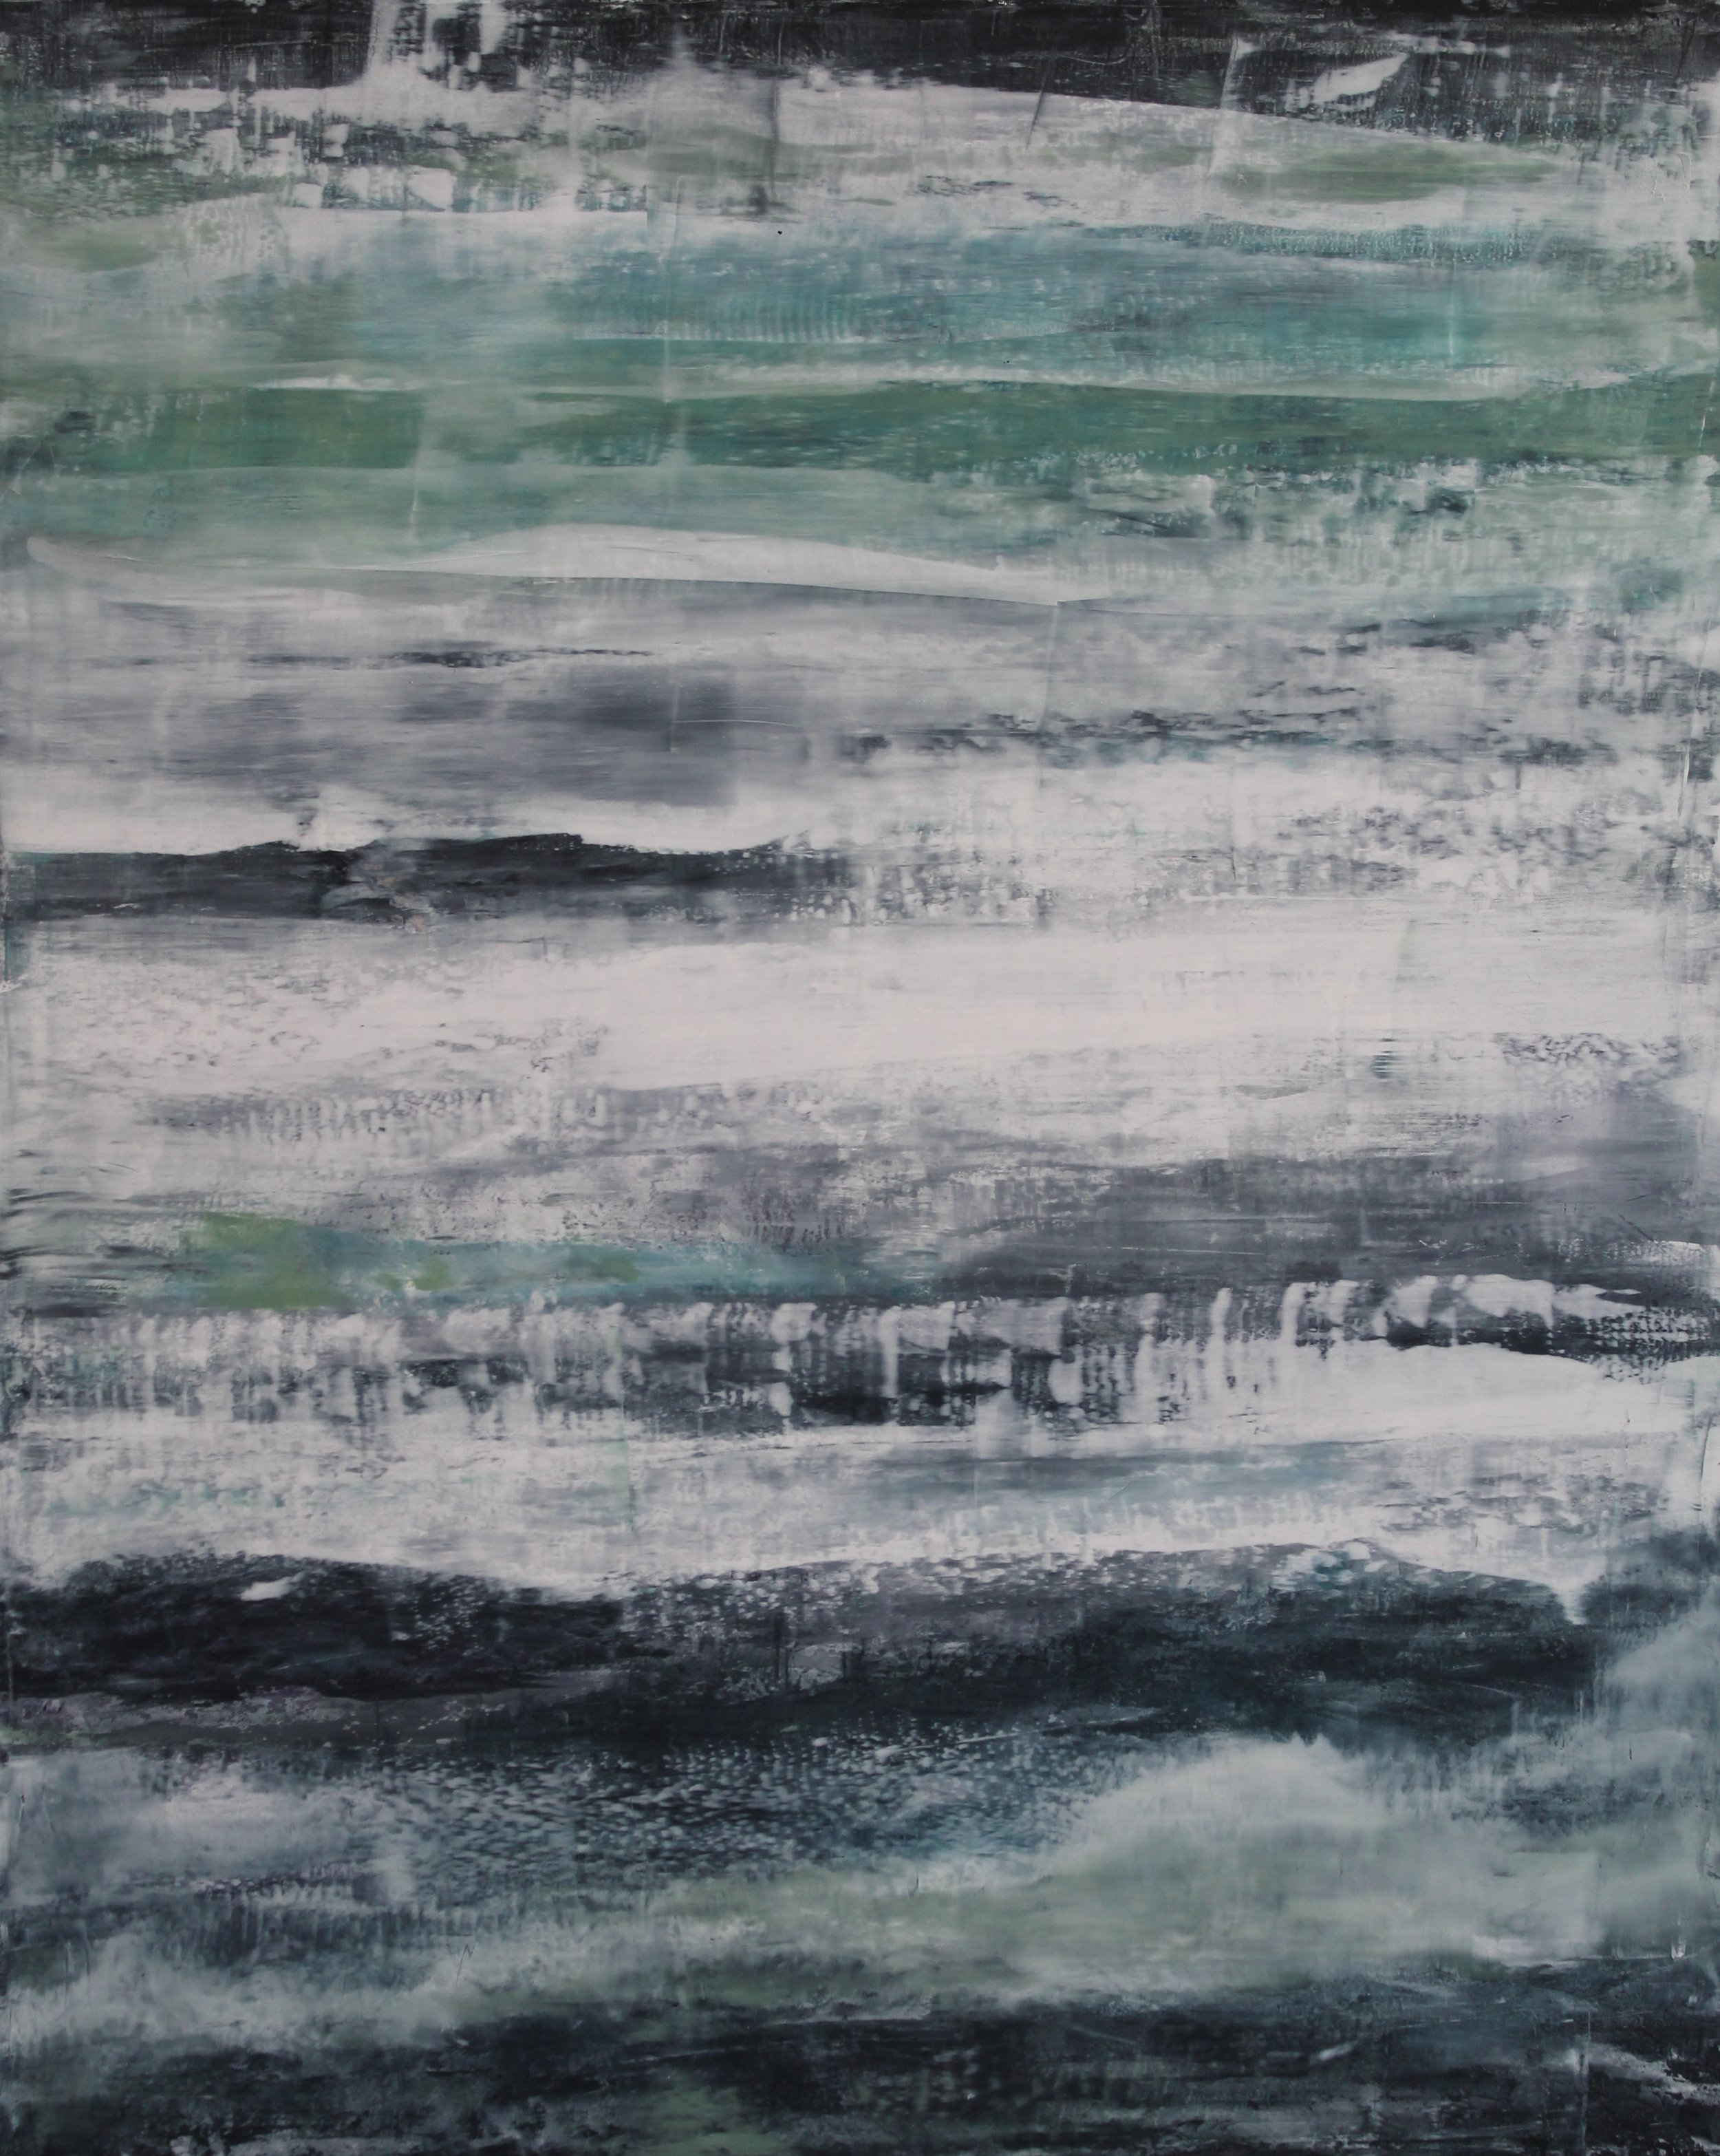 "Seafoam 16x20"" oil and wax on wood panel  $425"